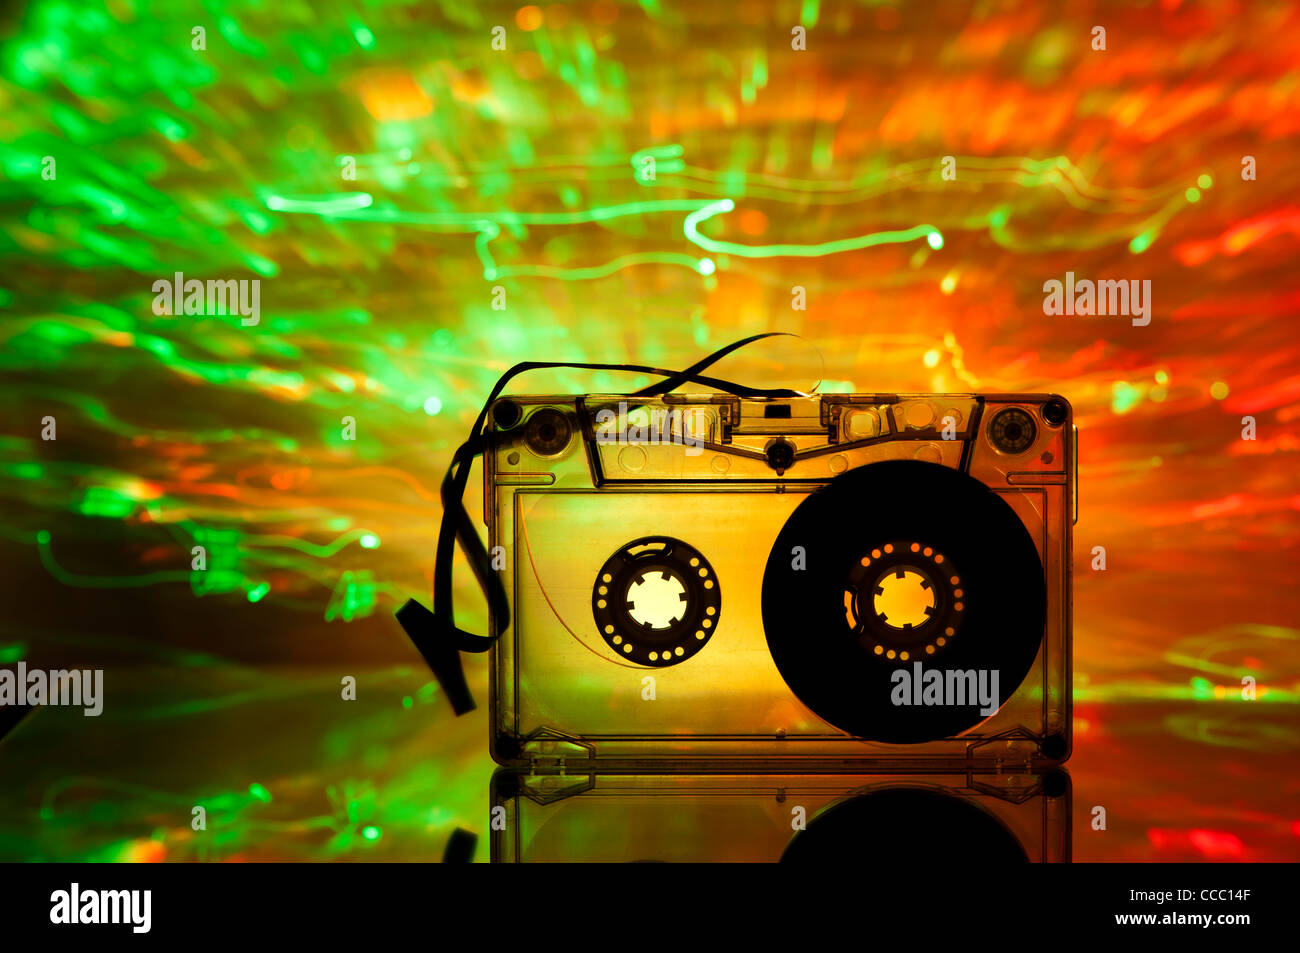 Cassette tape and multicolored yellow green lights on background - Stock Image